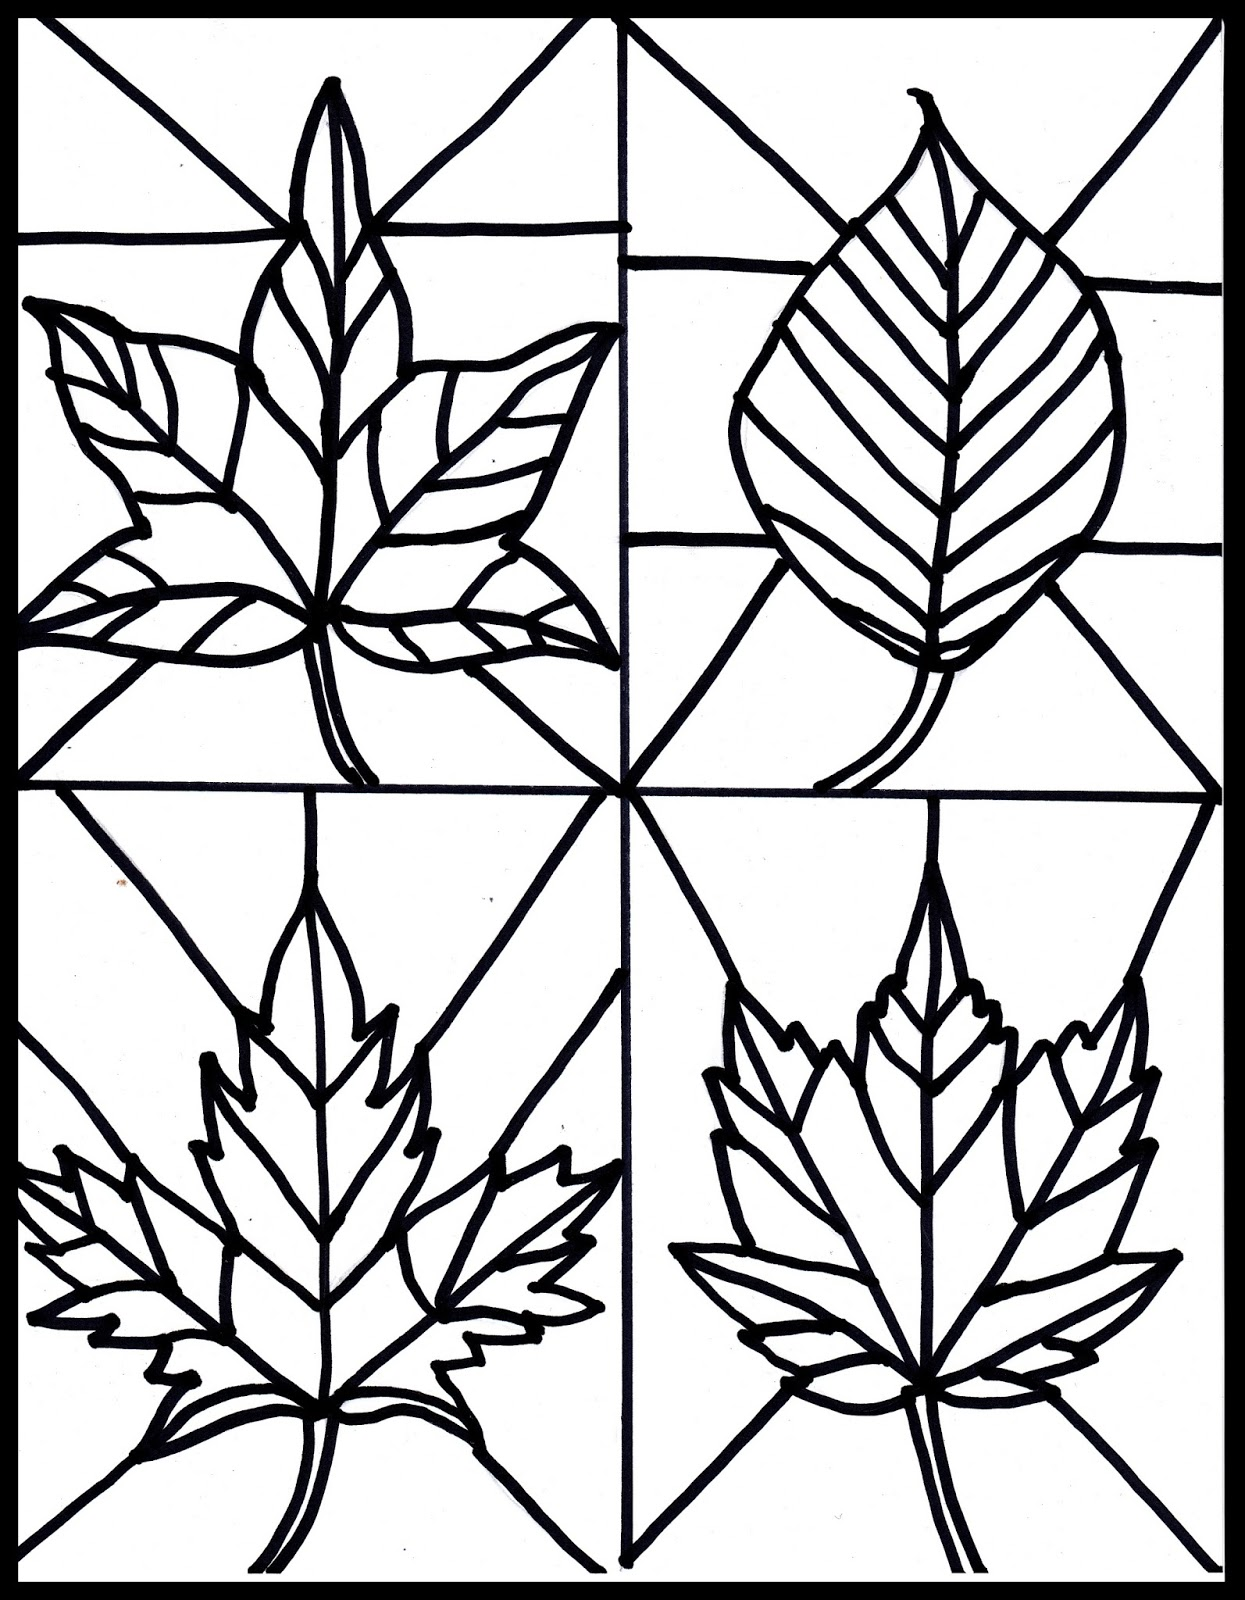 1245x1600 Make It Easy Crafts Kid's Craft Stained Glass Leaves Free Printable